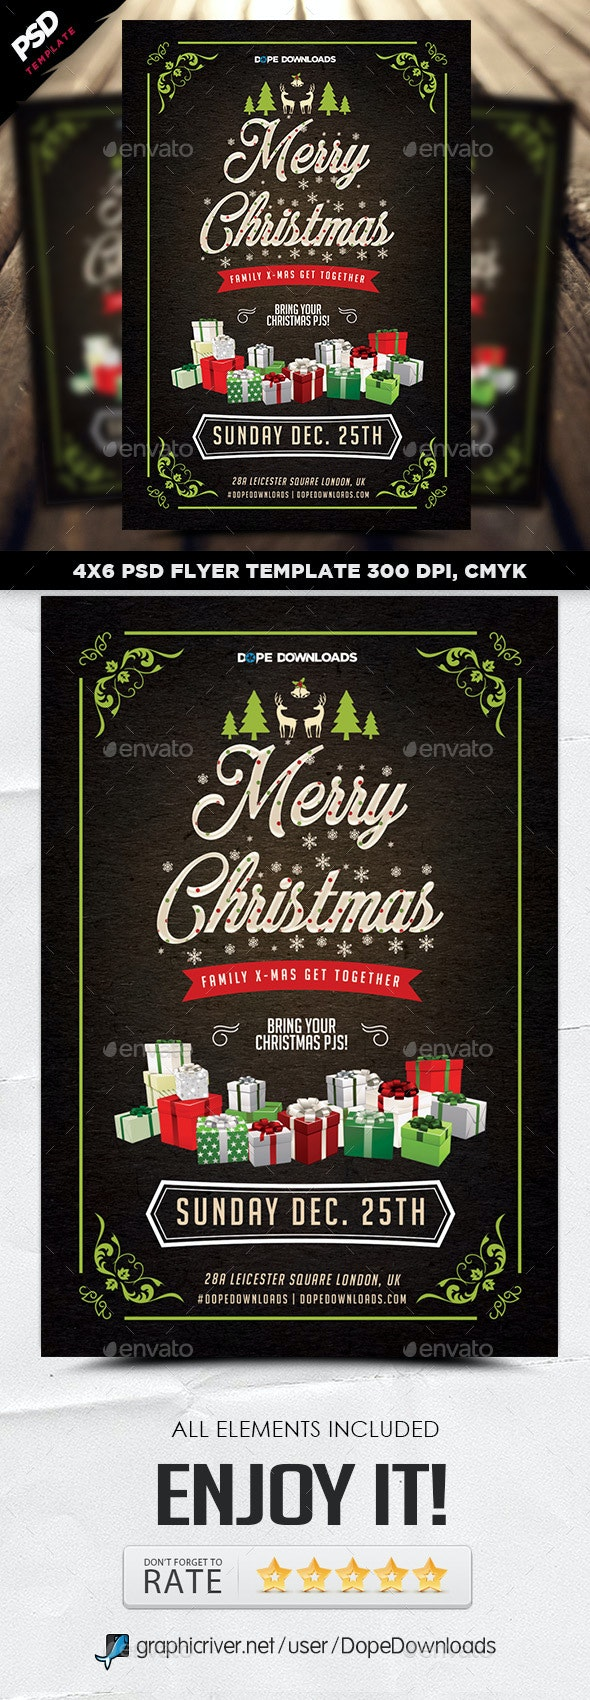 Family Christmas Party Flyer Template - Holidays Events